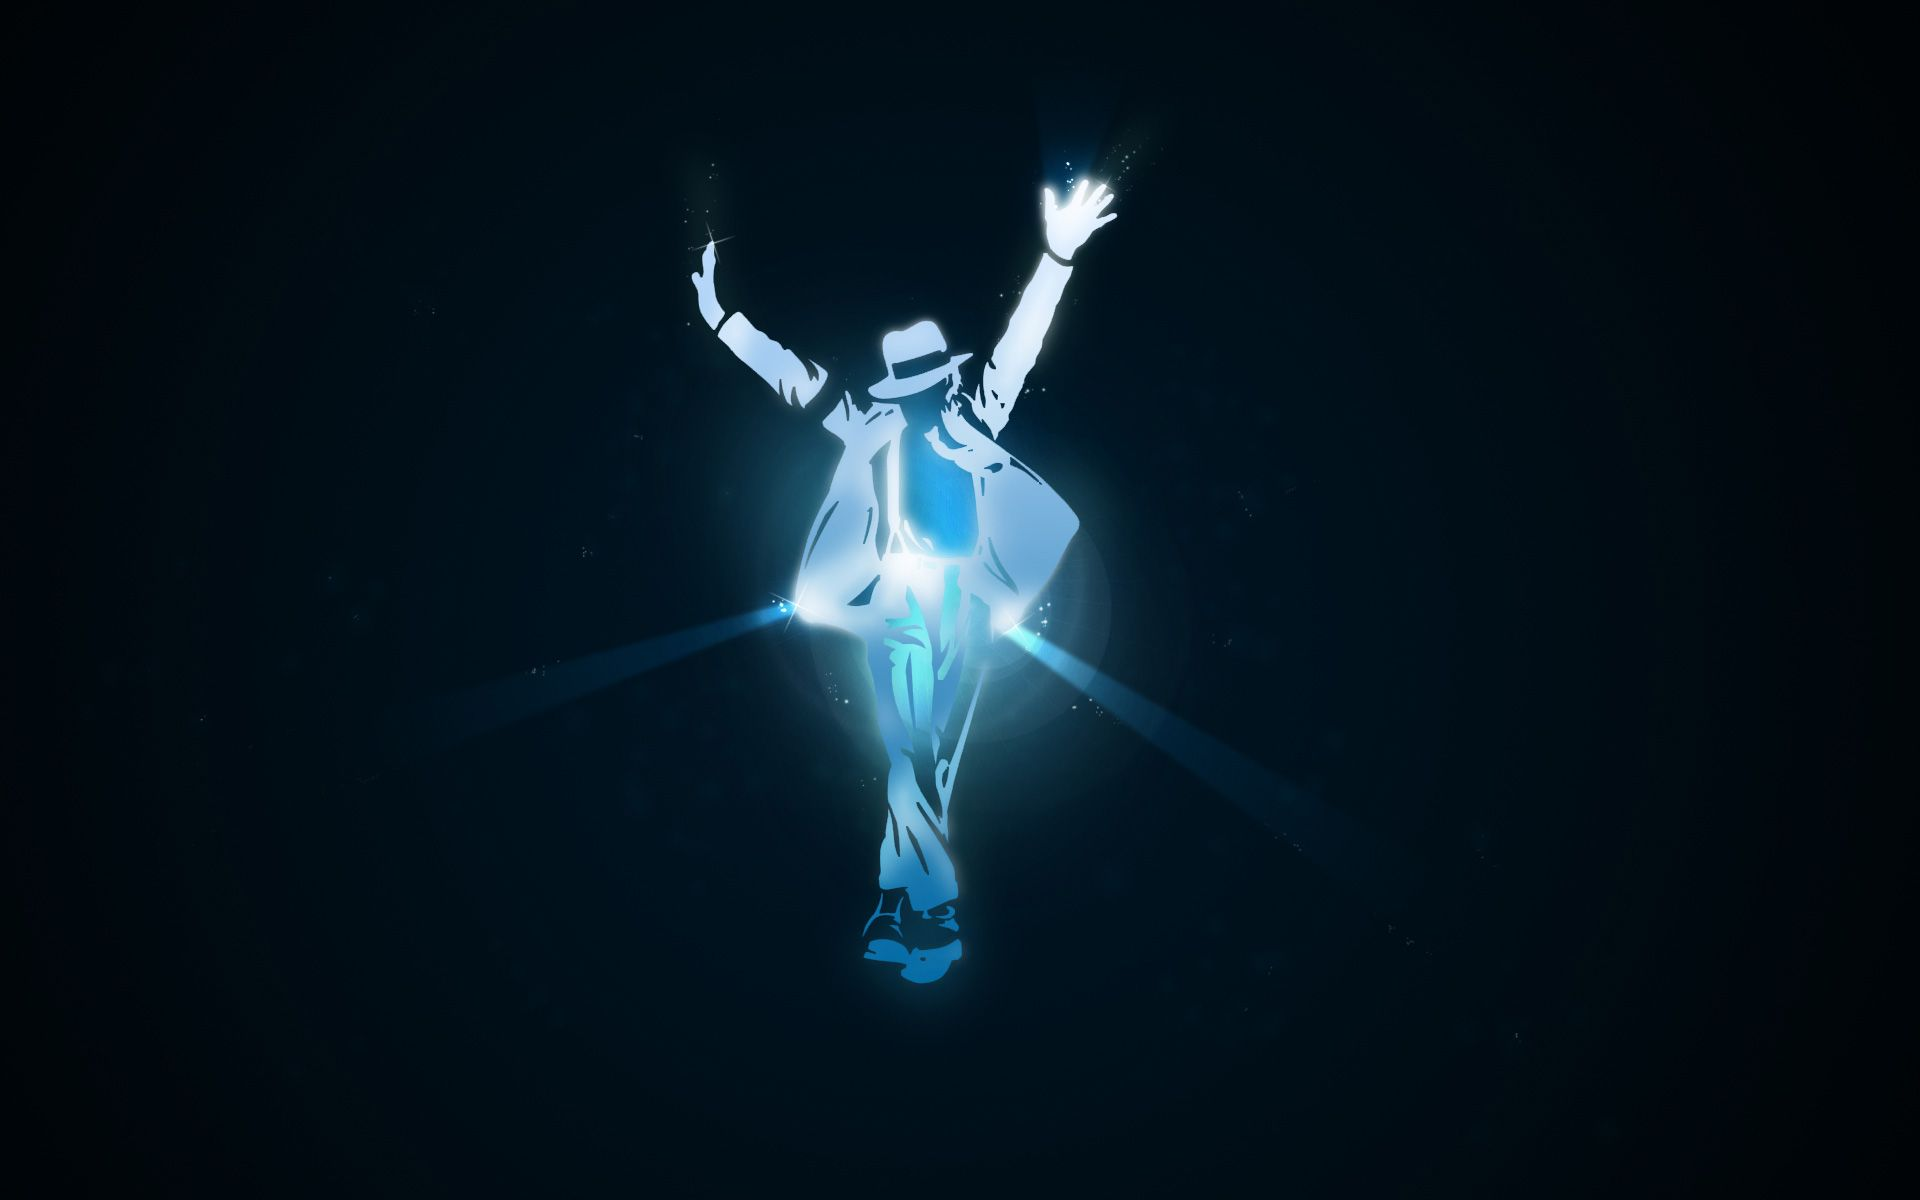 Michael Jackson Moonwalk Wallpapers Widescreen Festival Wallpaper 1920x1200